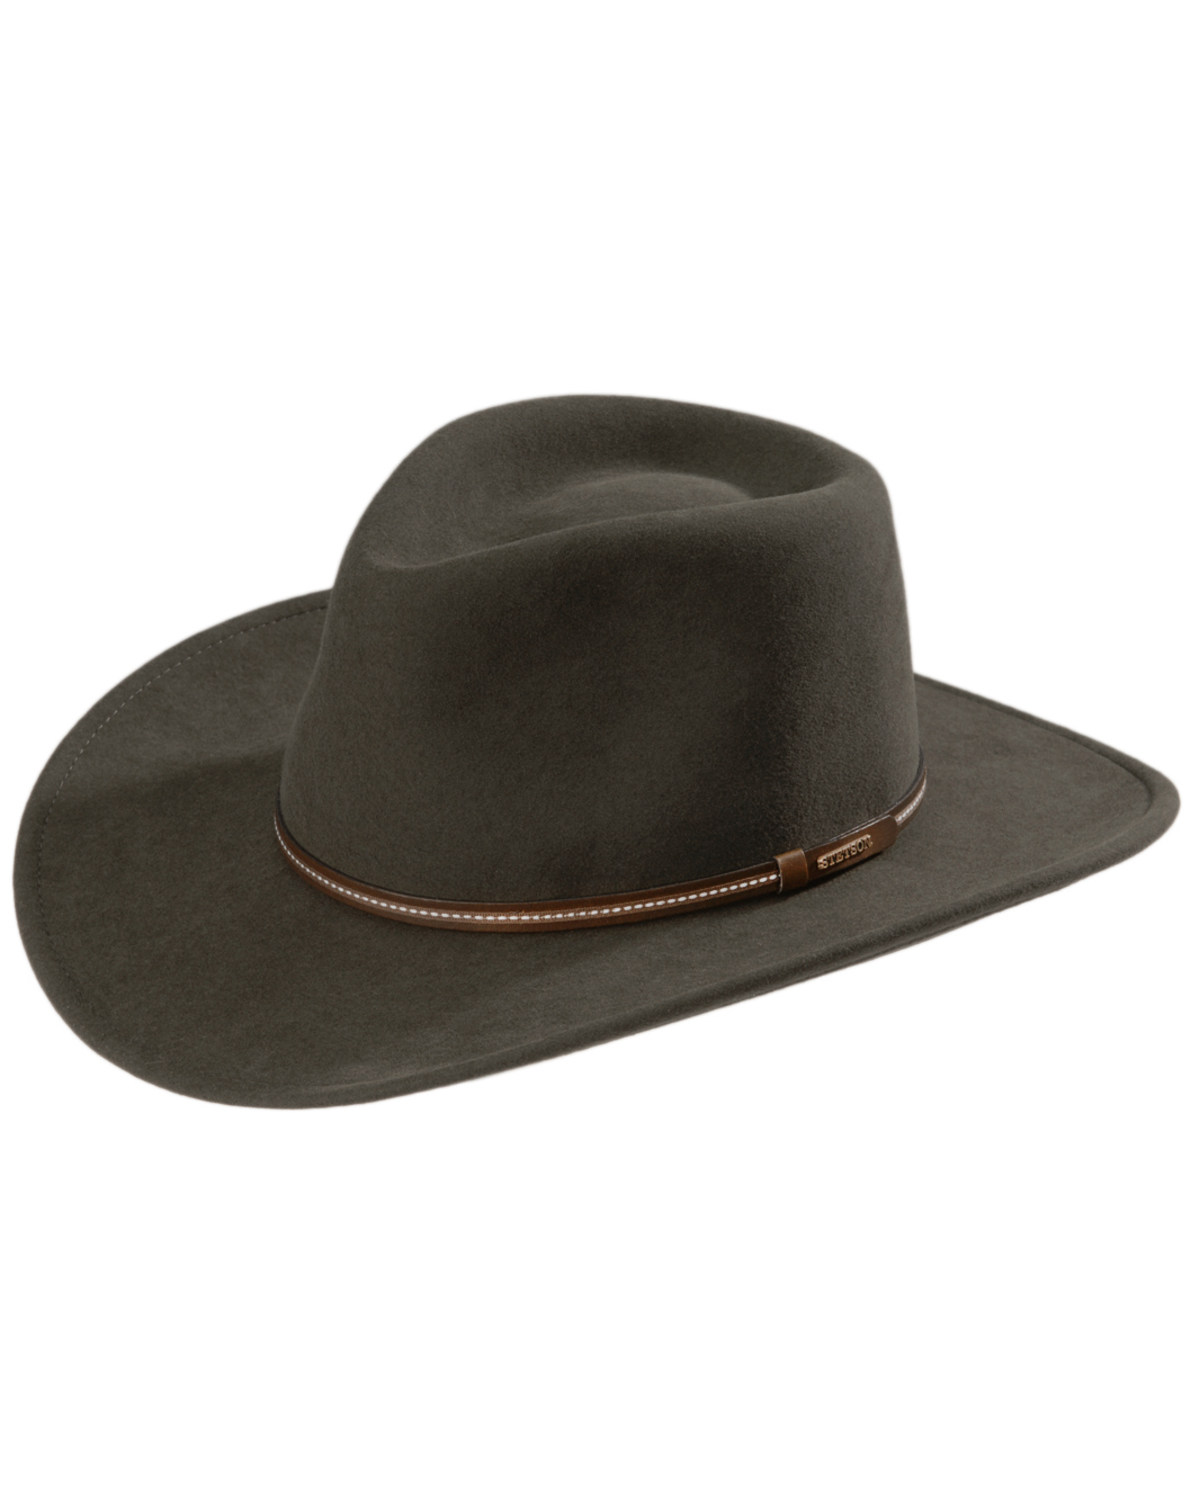 8a1c8513f43 Stetson Gallatin Crushable Wool Hat